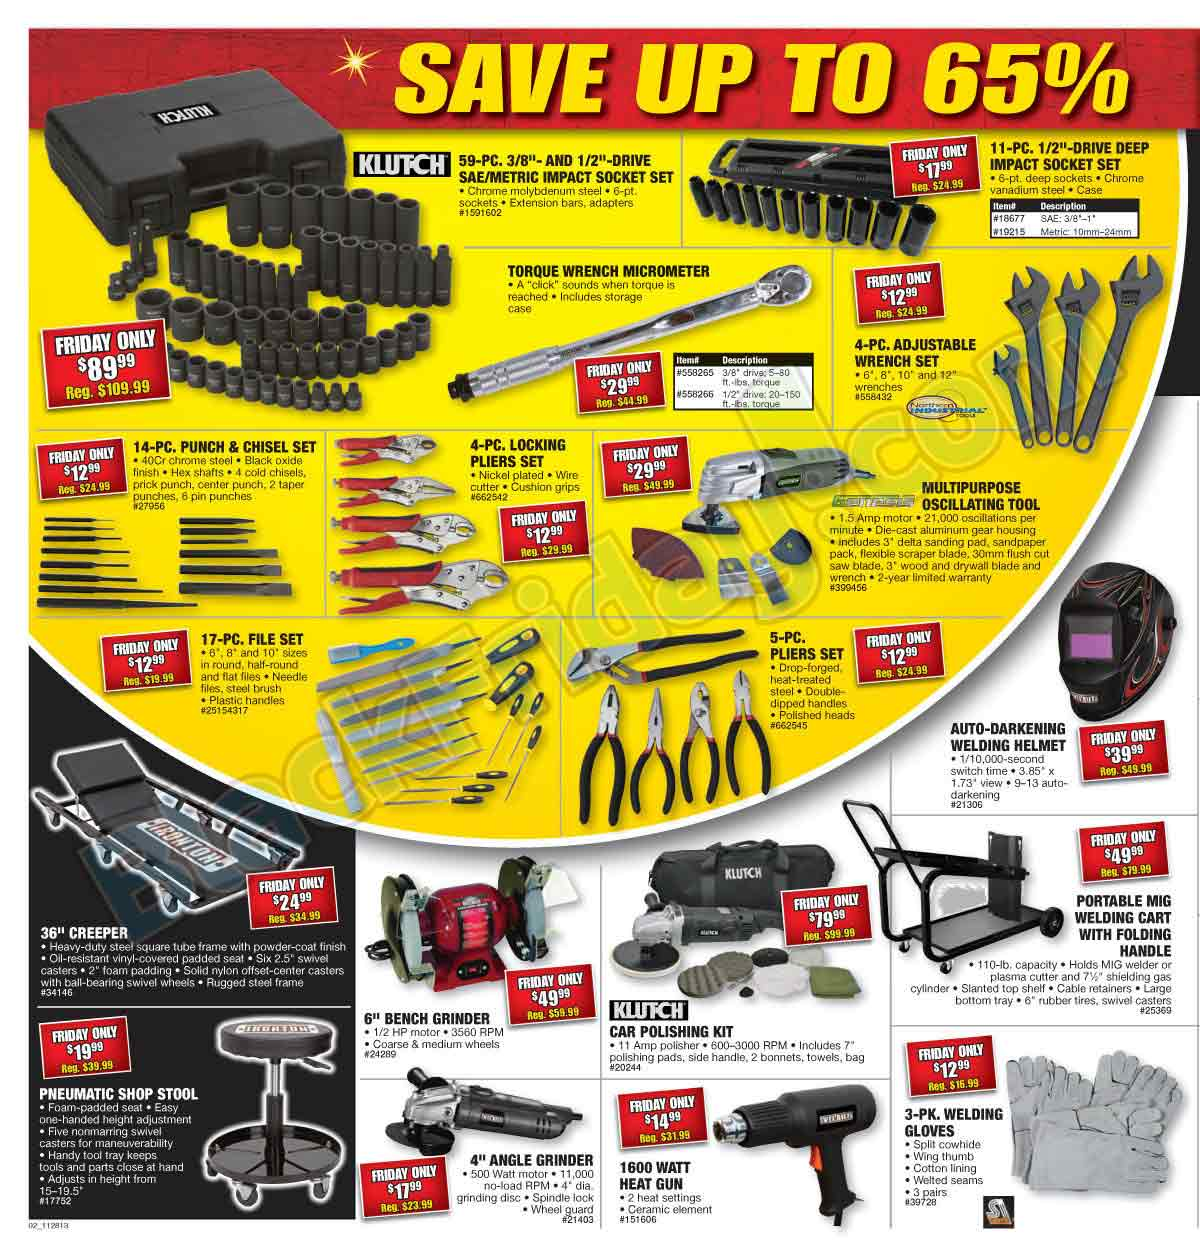 northern tools northern tool equipment company and product info